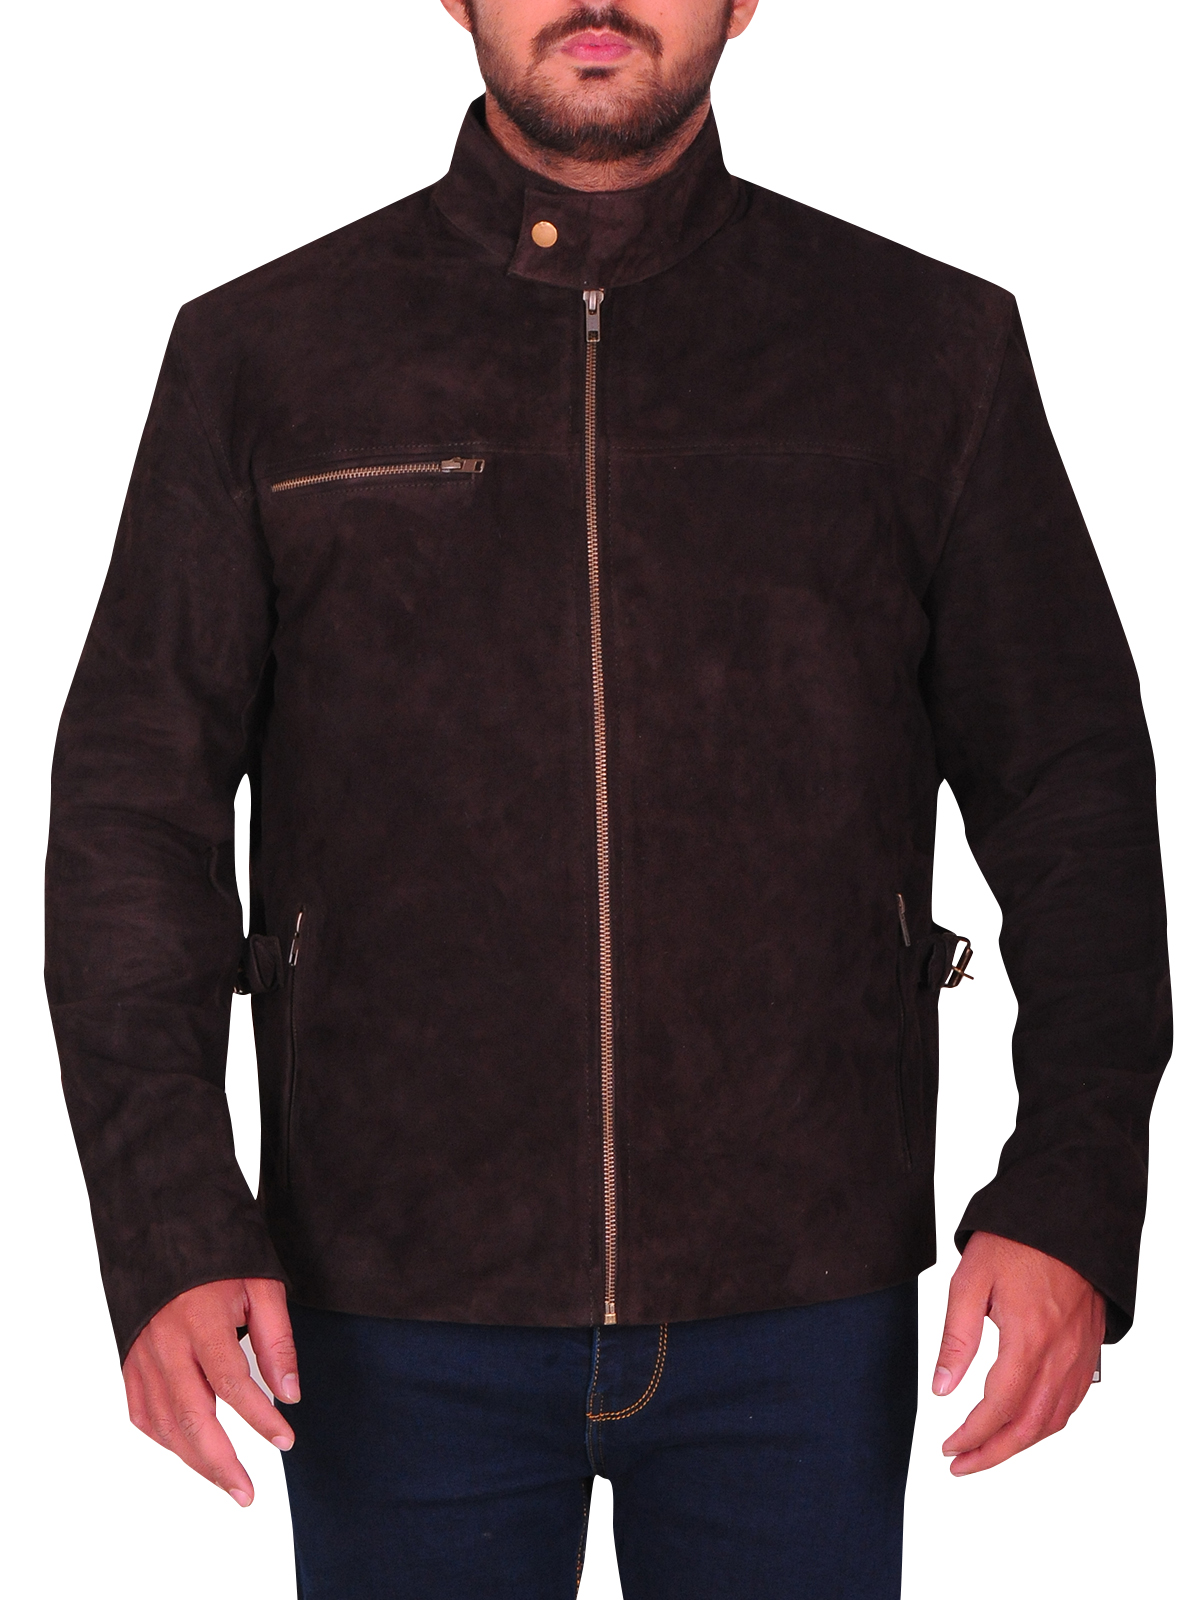 Mission-Impossible-Suede-Jacket